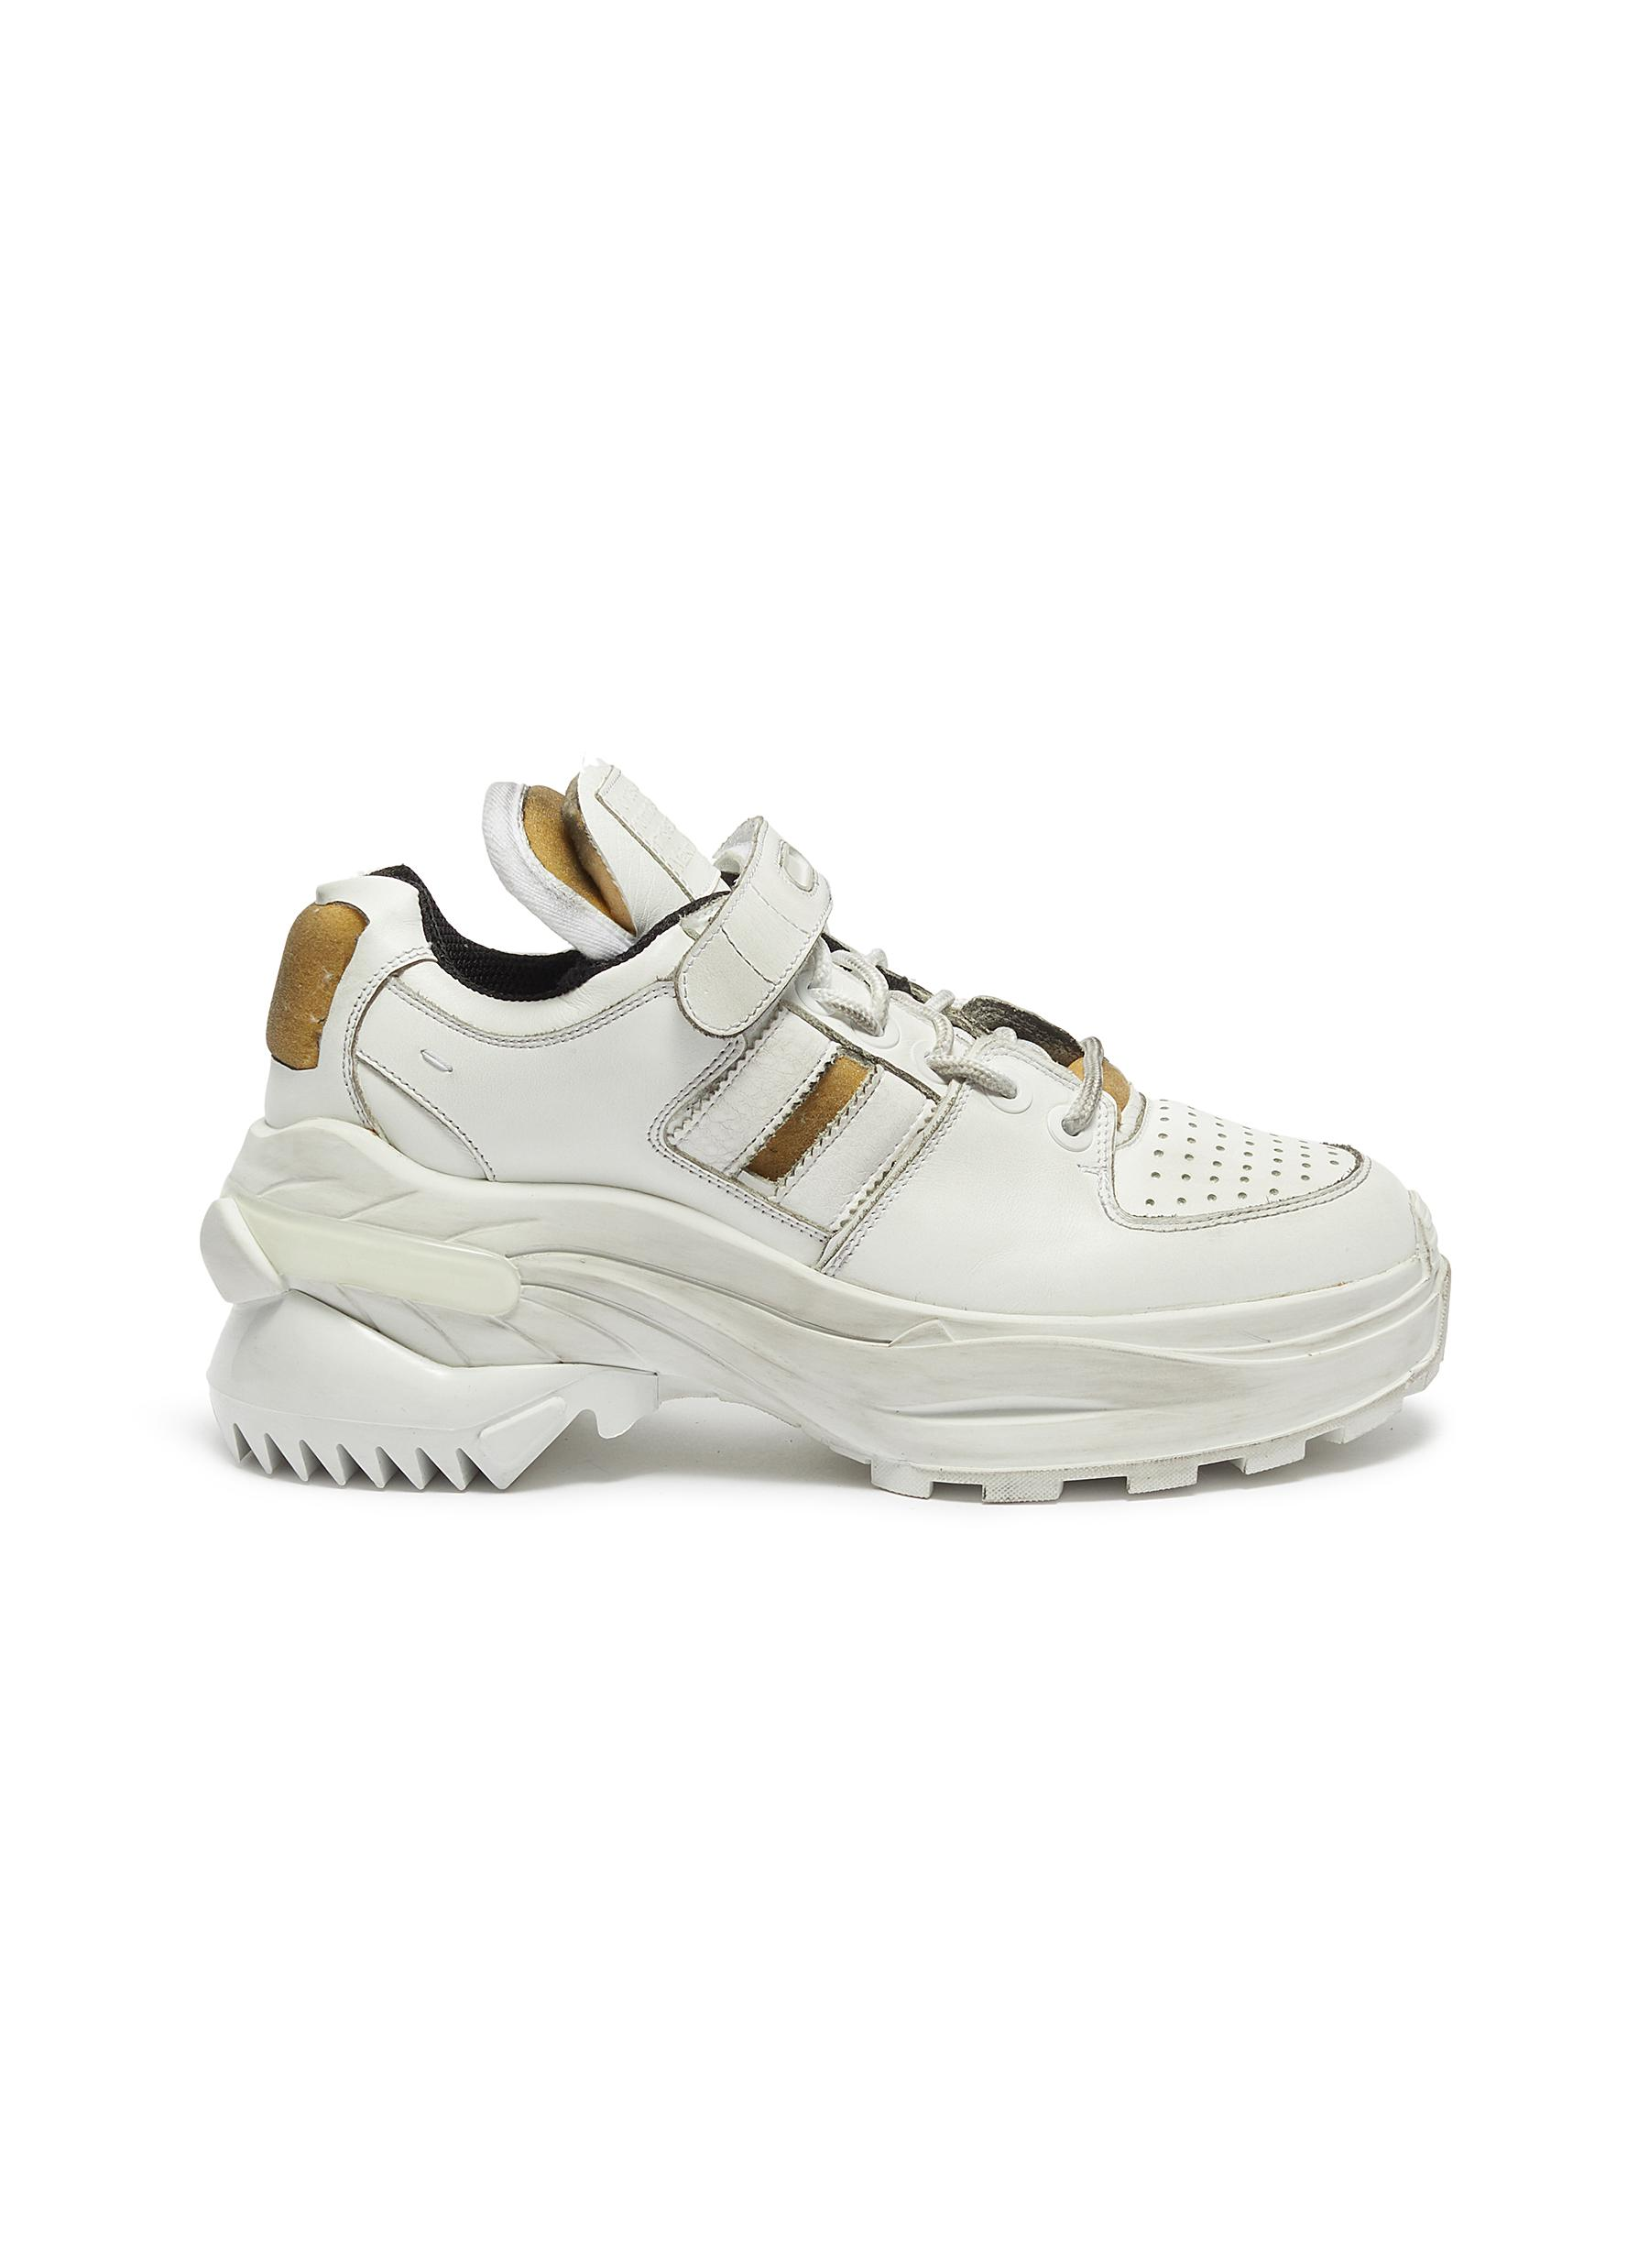 Retro Fit chunky outsole cutout leather sneakers by Maison Margiela